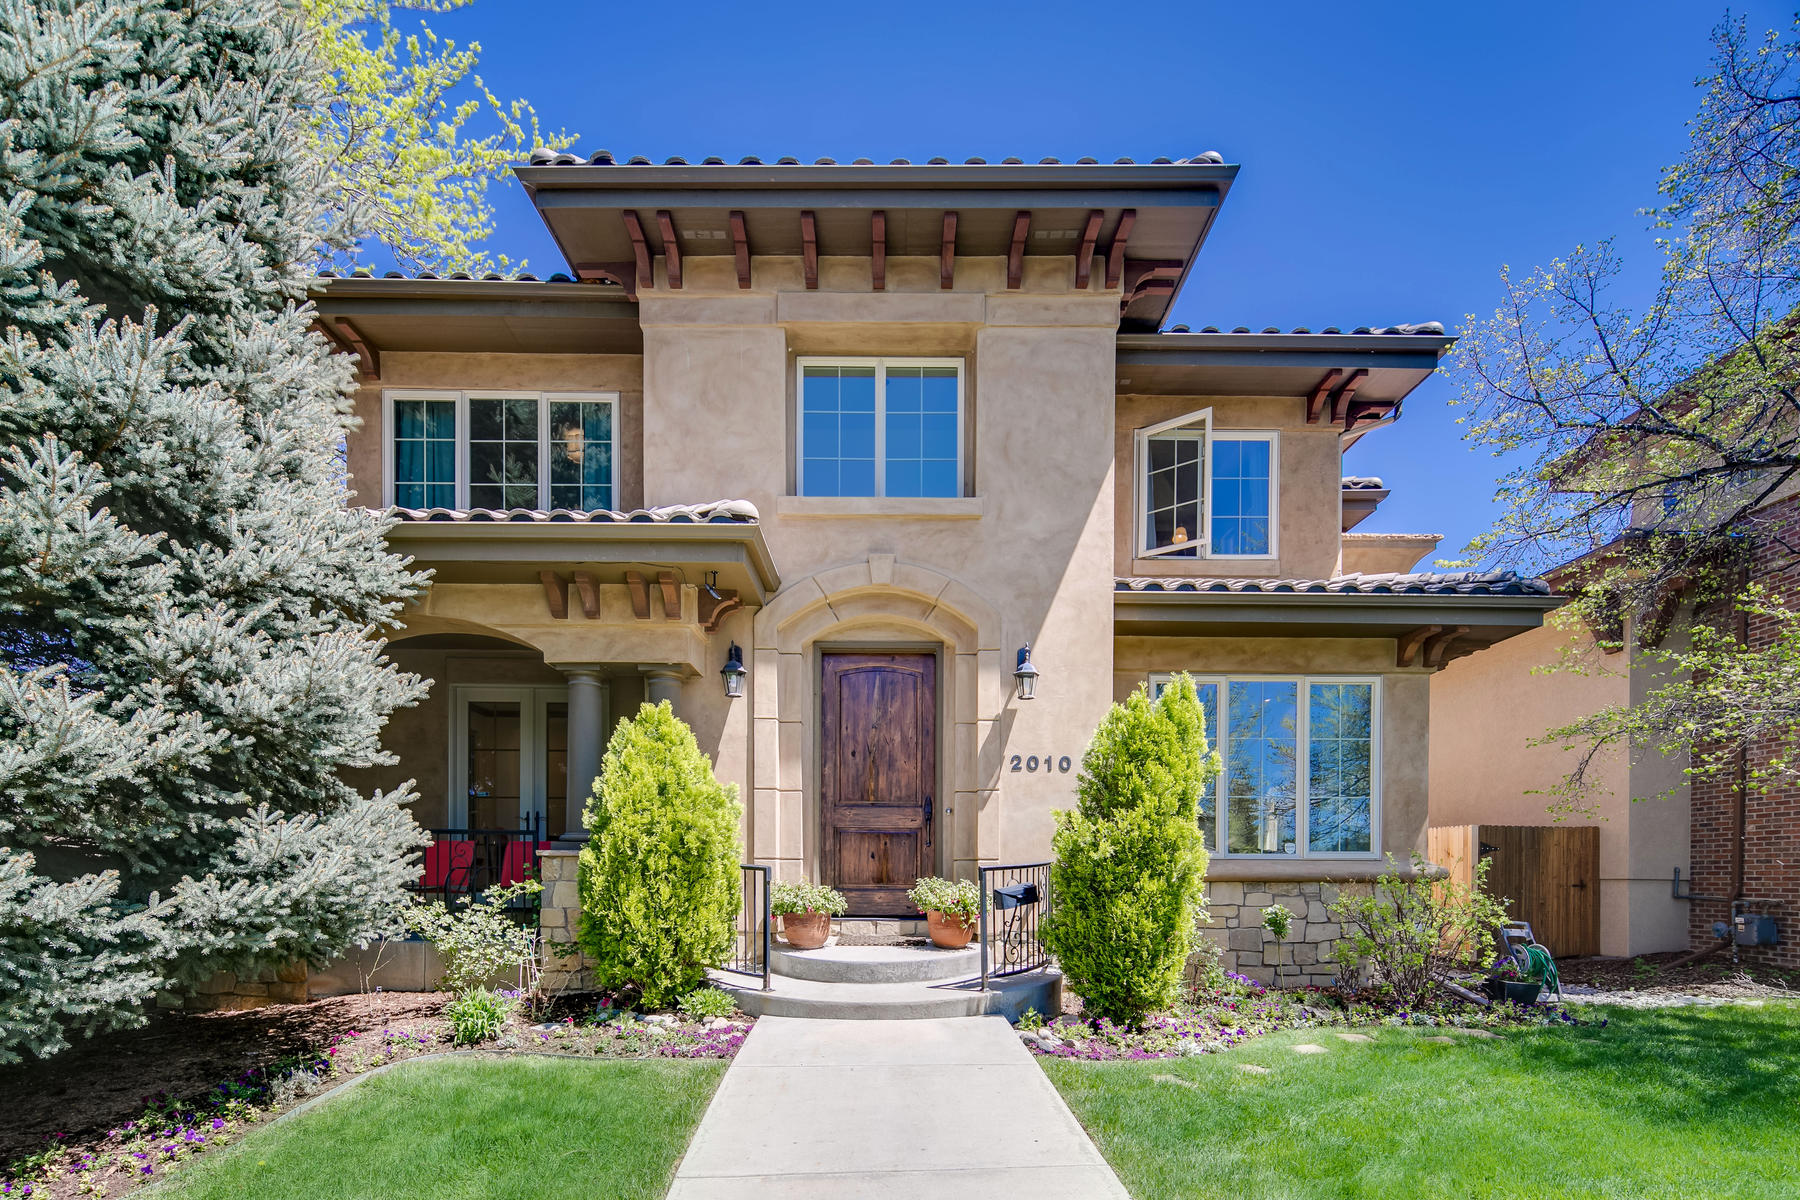 Property por un Venta en Beautiful Observatory Park home with a clean aesthetic 2010 S. Madison Street Denver, Colorado 80210 Estados Unidos